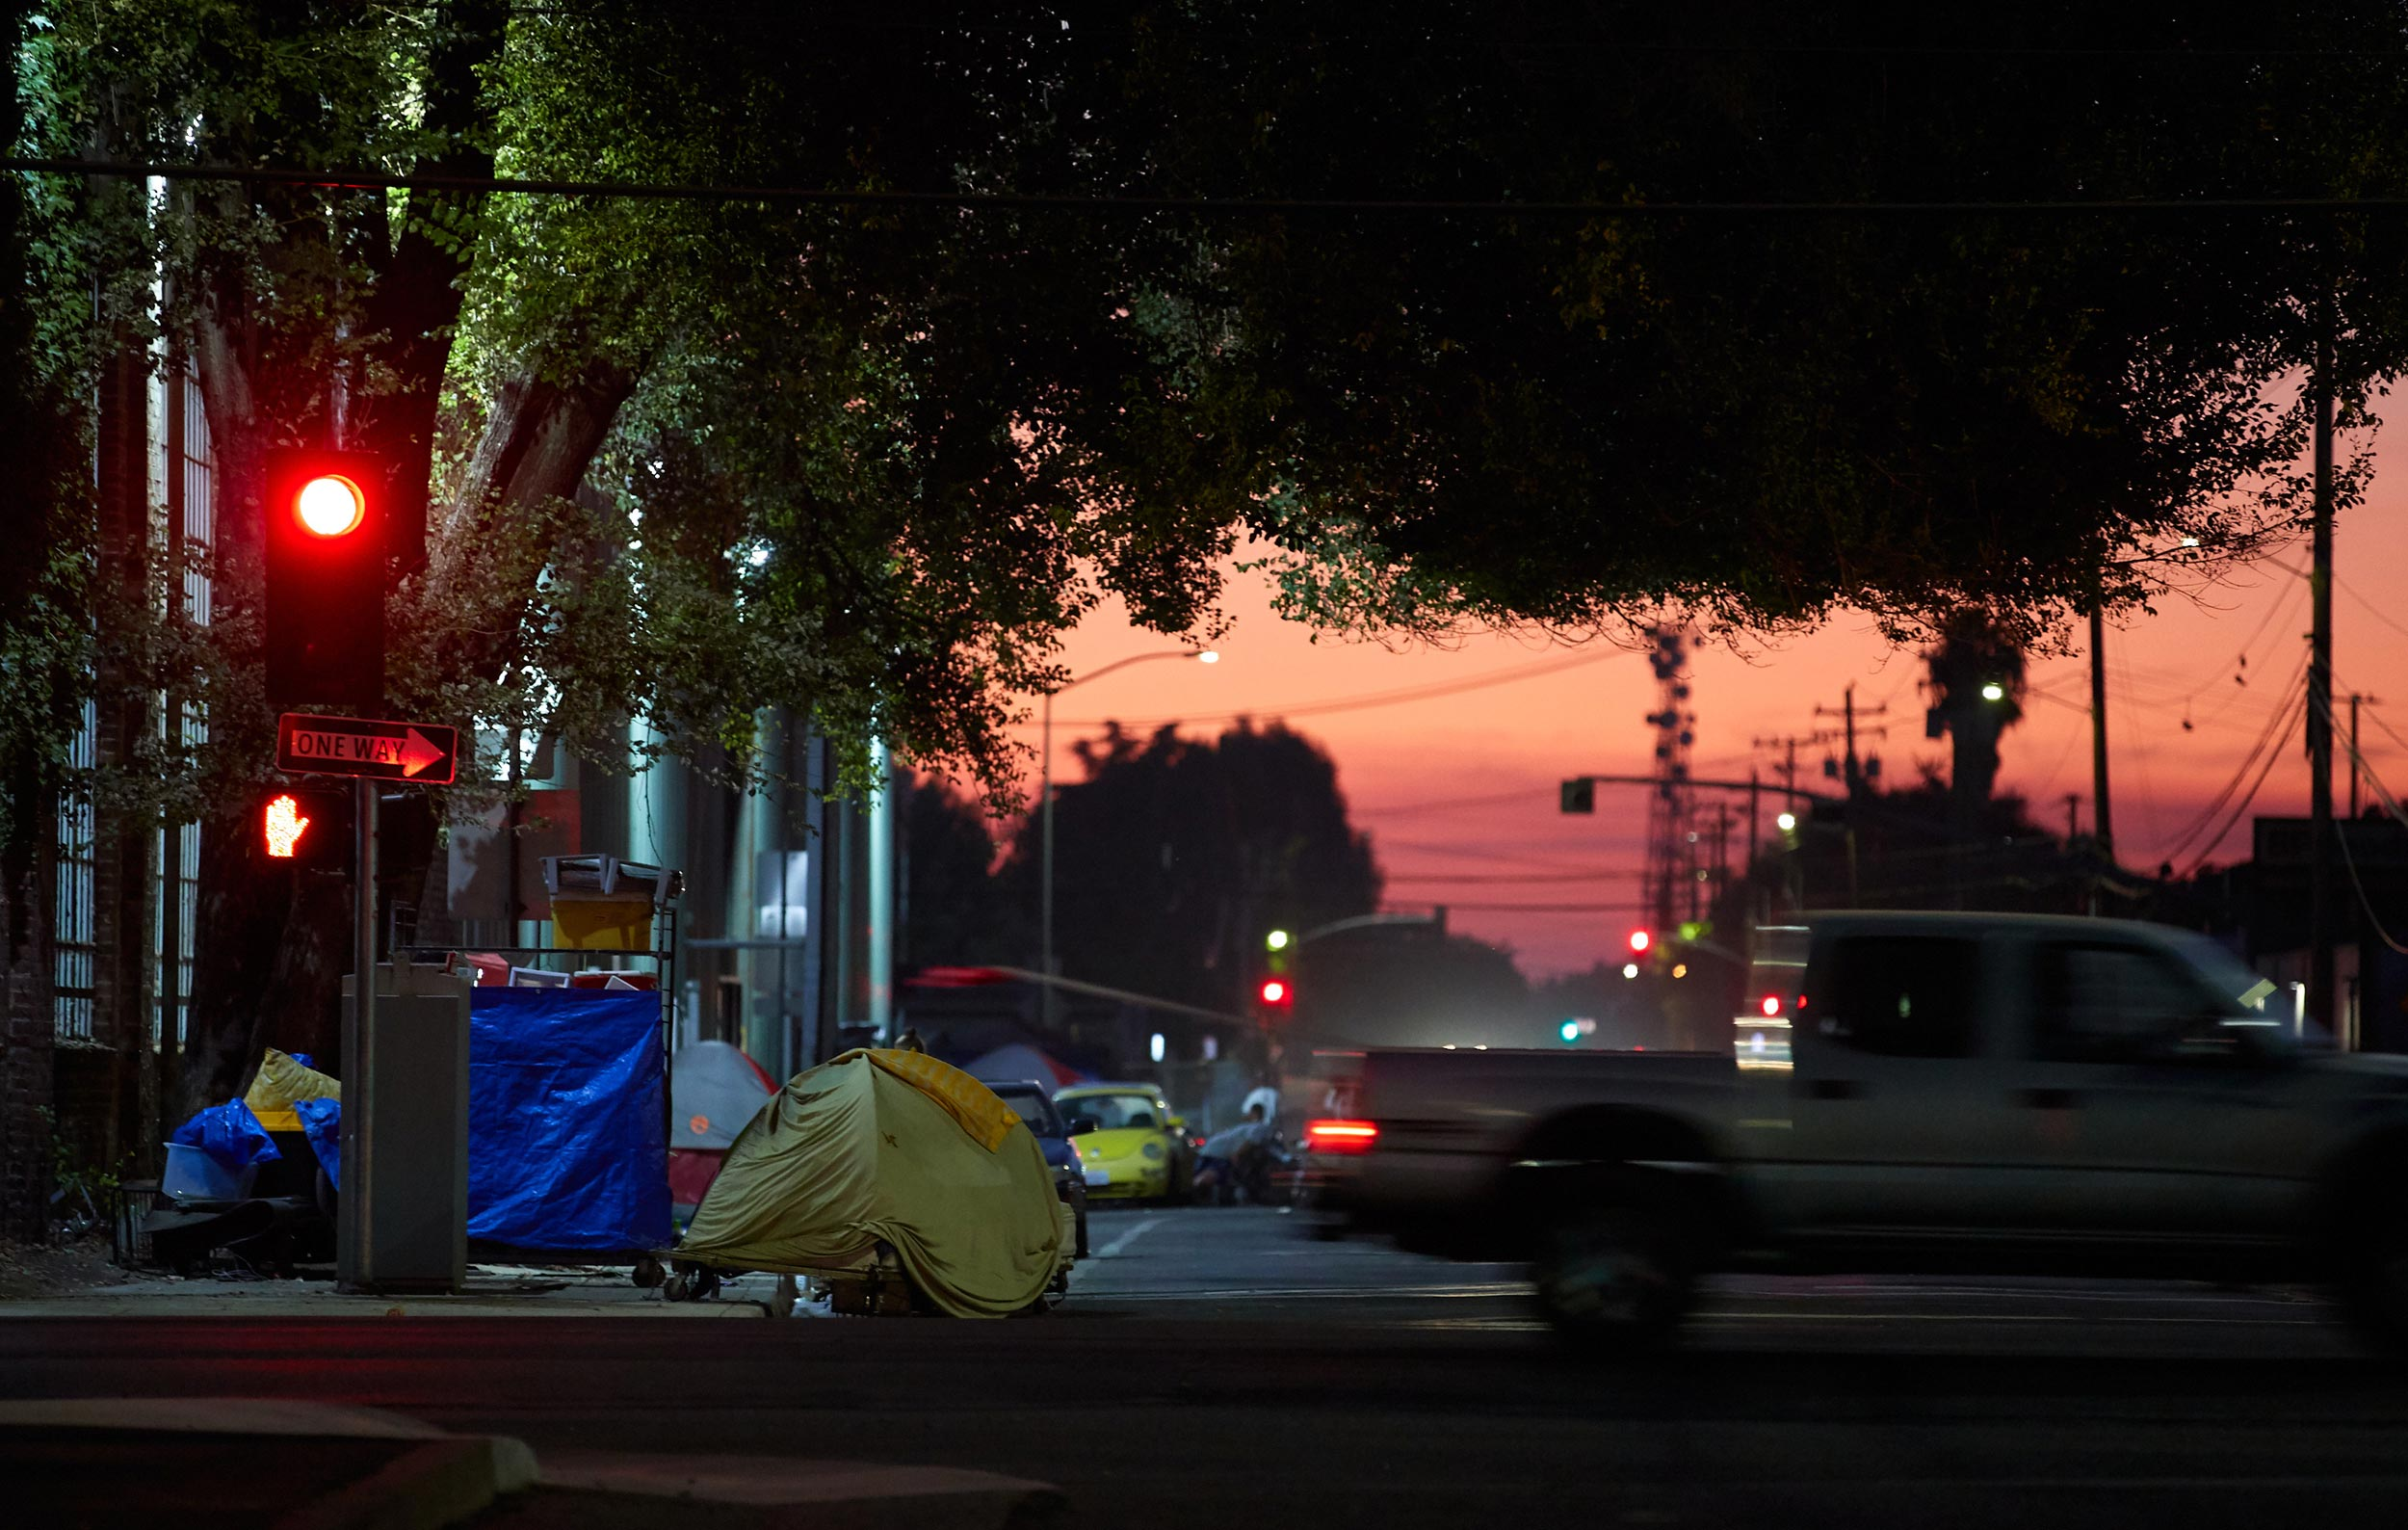 Downtown Homeless Encampment at Dusk